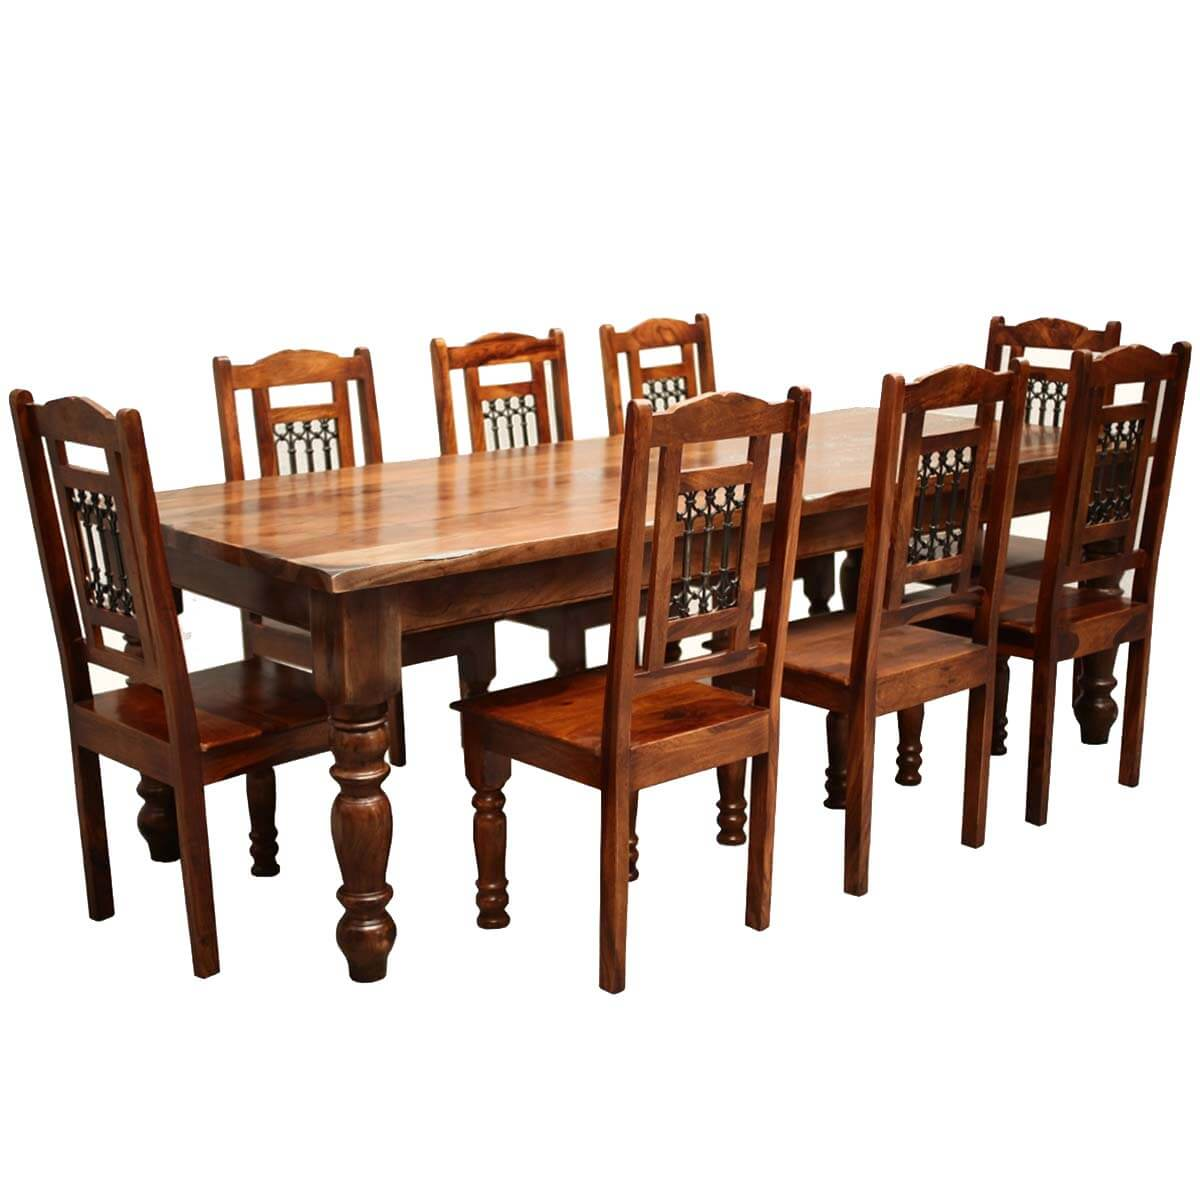 rustic furniture solid wood large dining table 8 chair set On dining table and 8 chairs